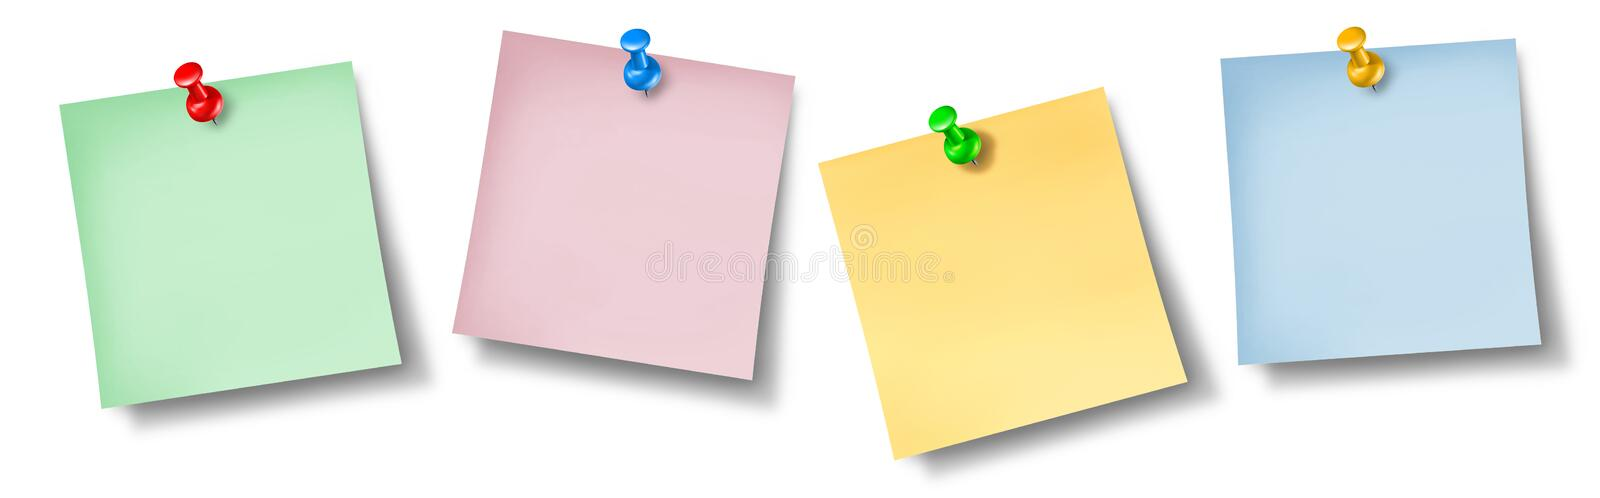 Office notes on a wall royalty free illustration